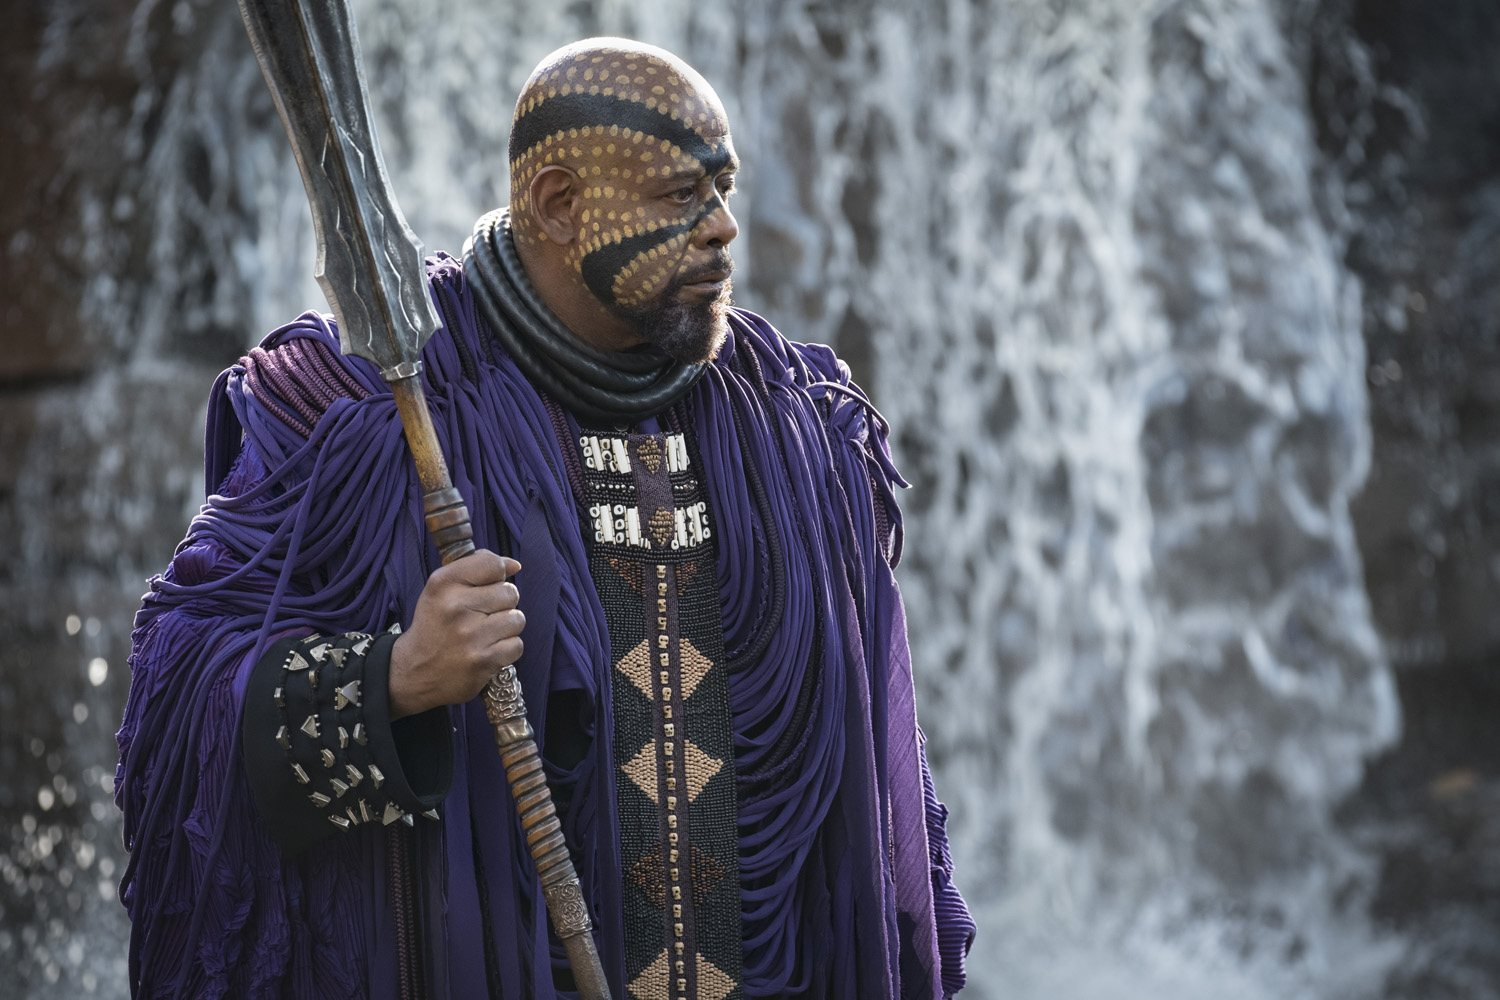 Forest Whitaker's Zuri wears purple garb and elaborate face paint while holding a giant scepter in Black Panther